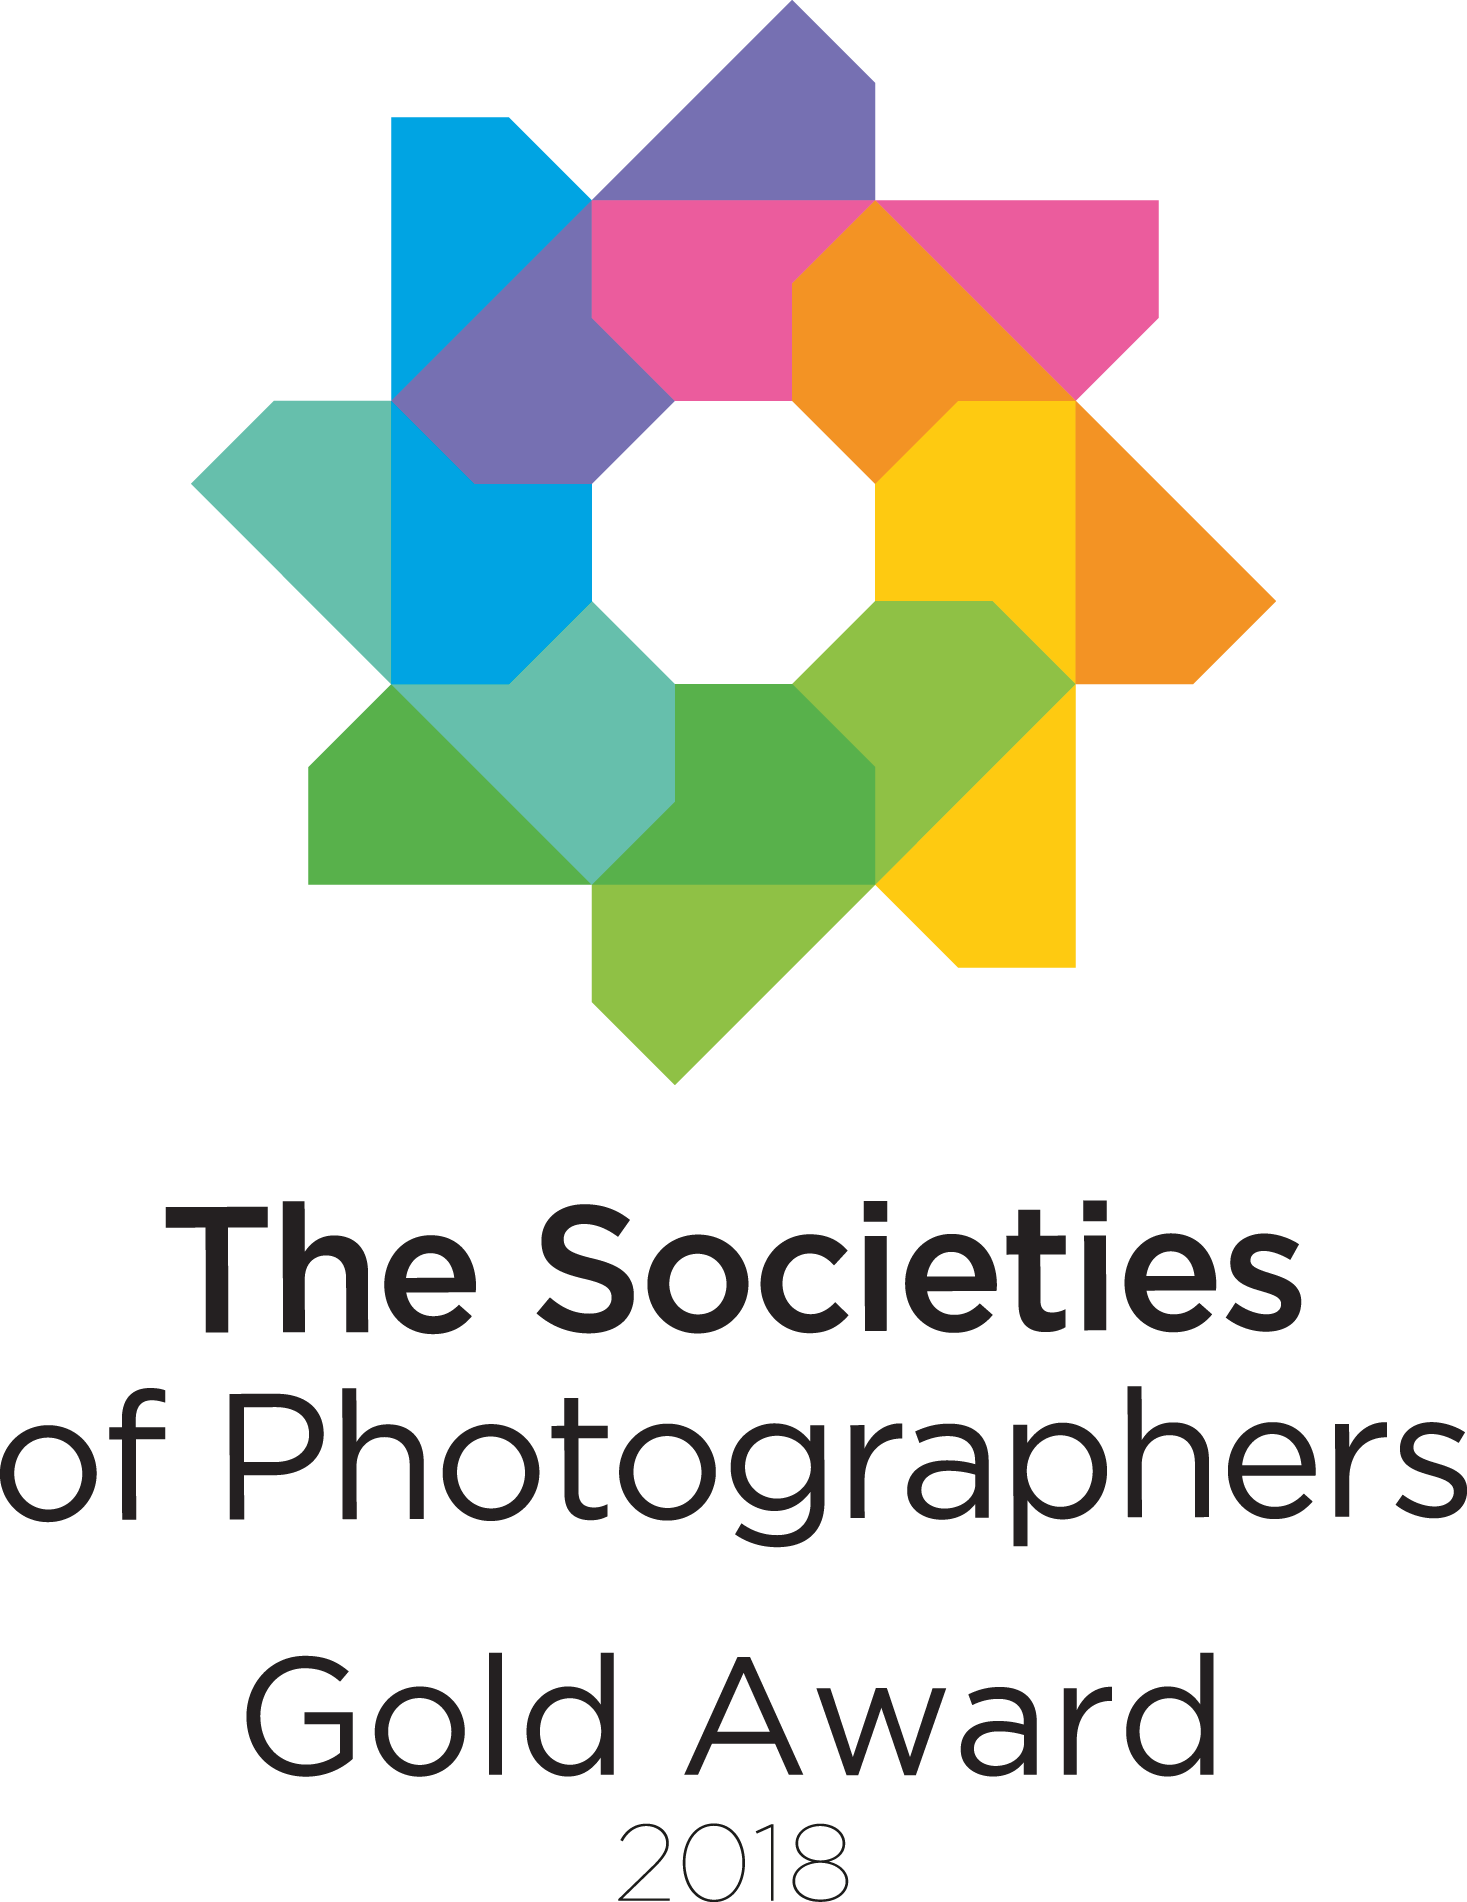 Kent wedding photographer with Gold award from The Societies